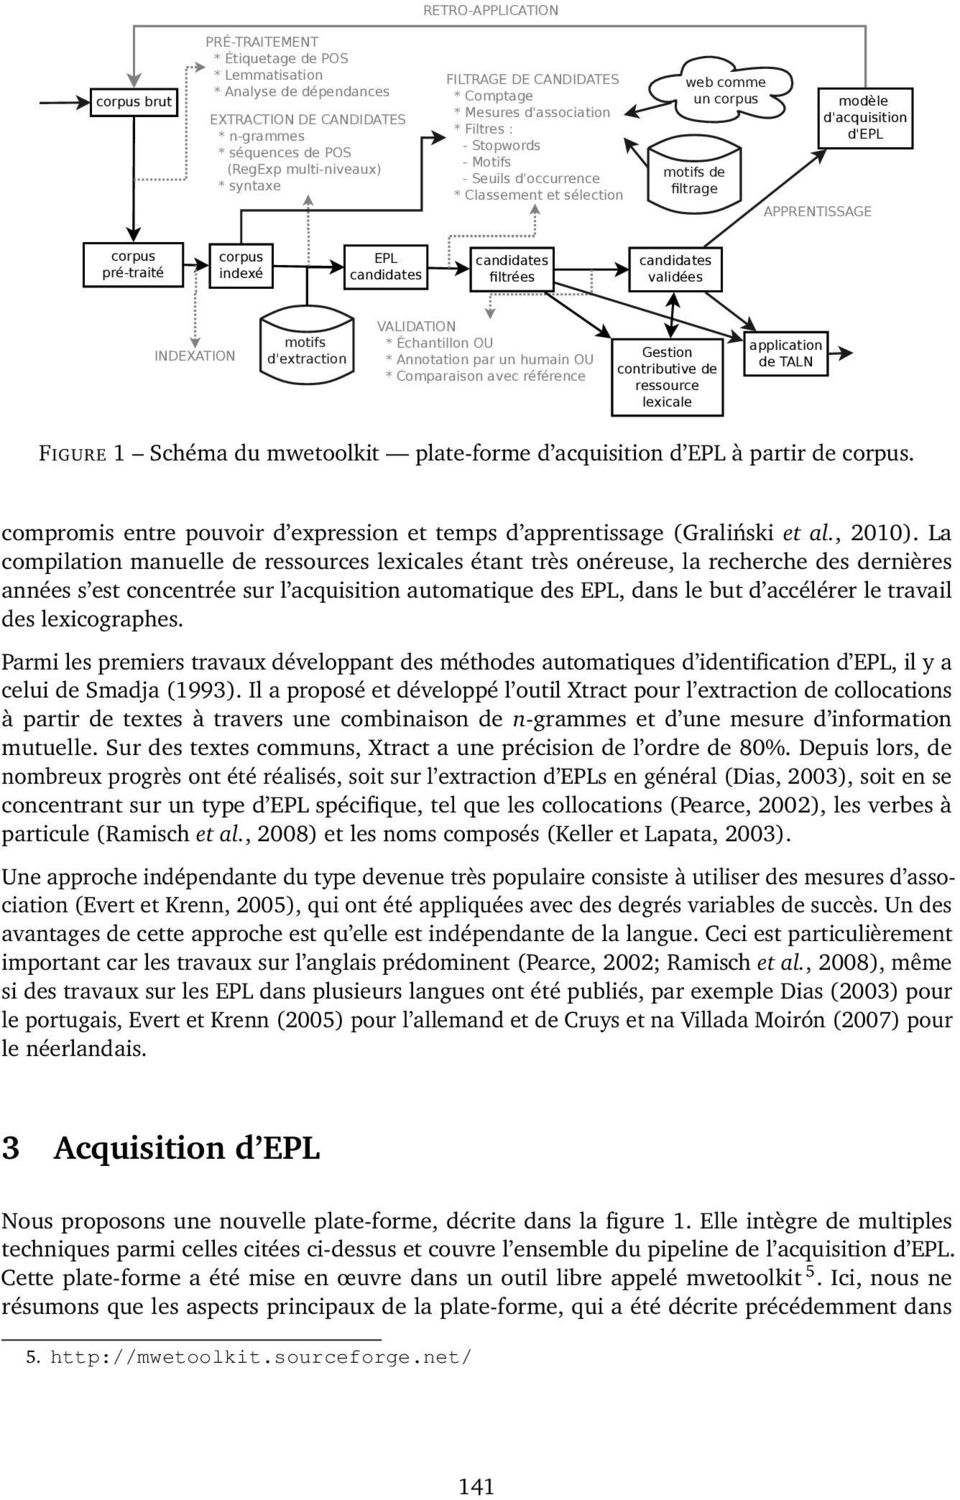 d'epl APPRENTISSAGE corpus pré-traité corpus indexé EPL candidates candidates filtrées candidates validées INDEXATION motifs d'extraction VALIDATION * Échantillon OU * Annotation par un humain OU *